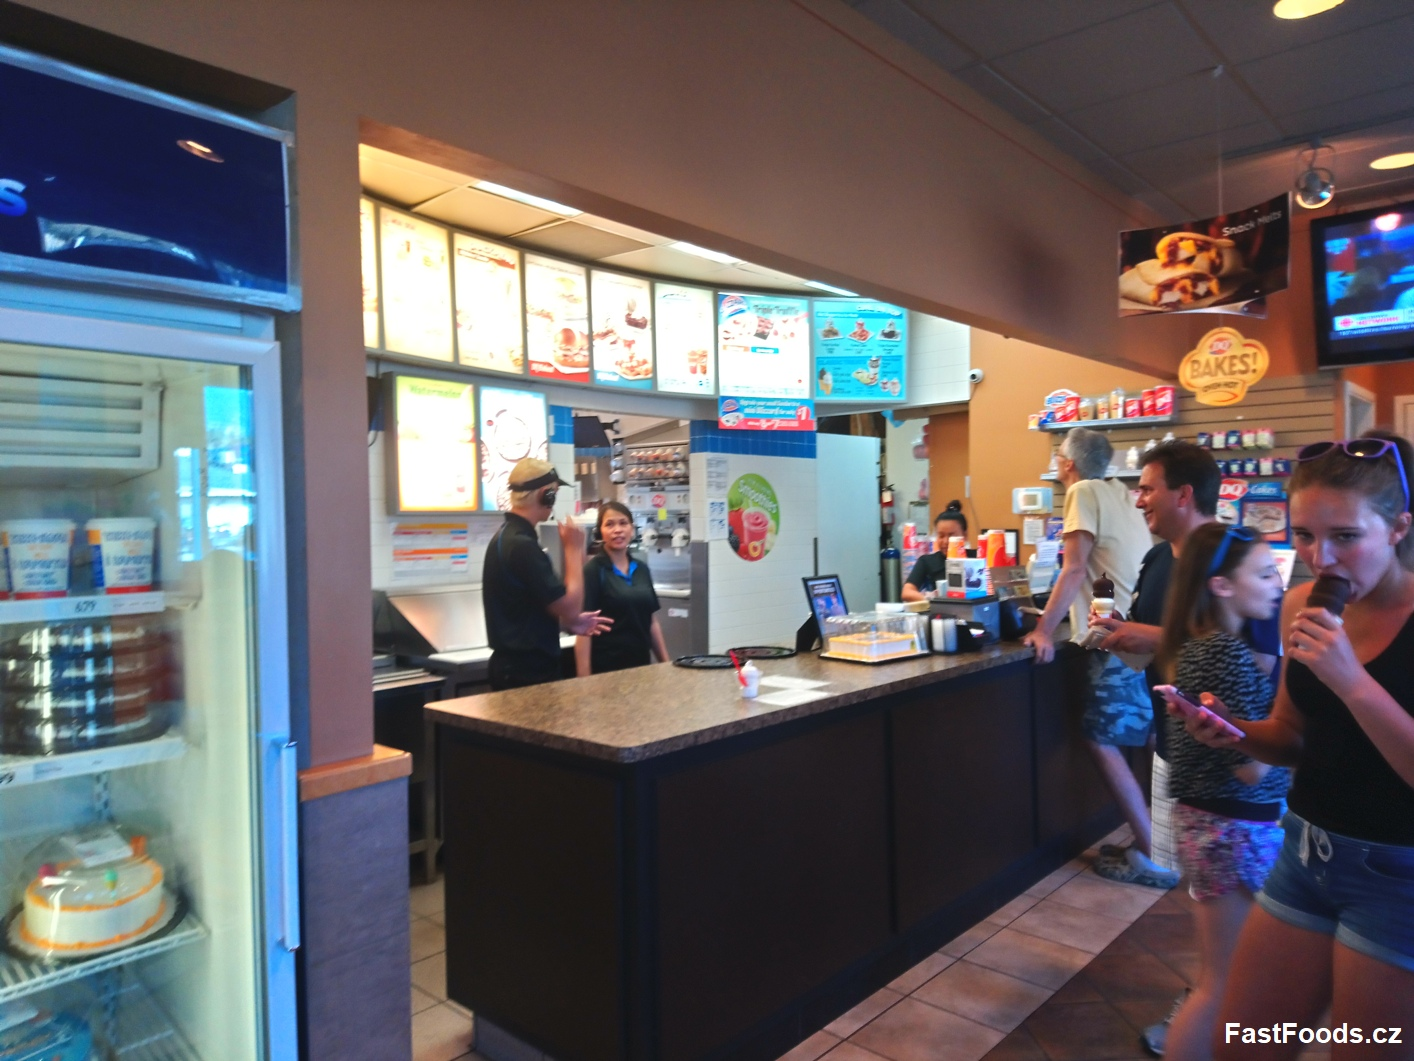 dq grill chill laurierst invermere kanada fastfoods.cz 2